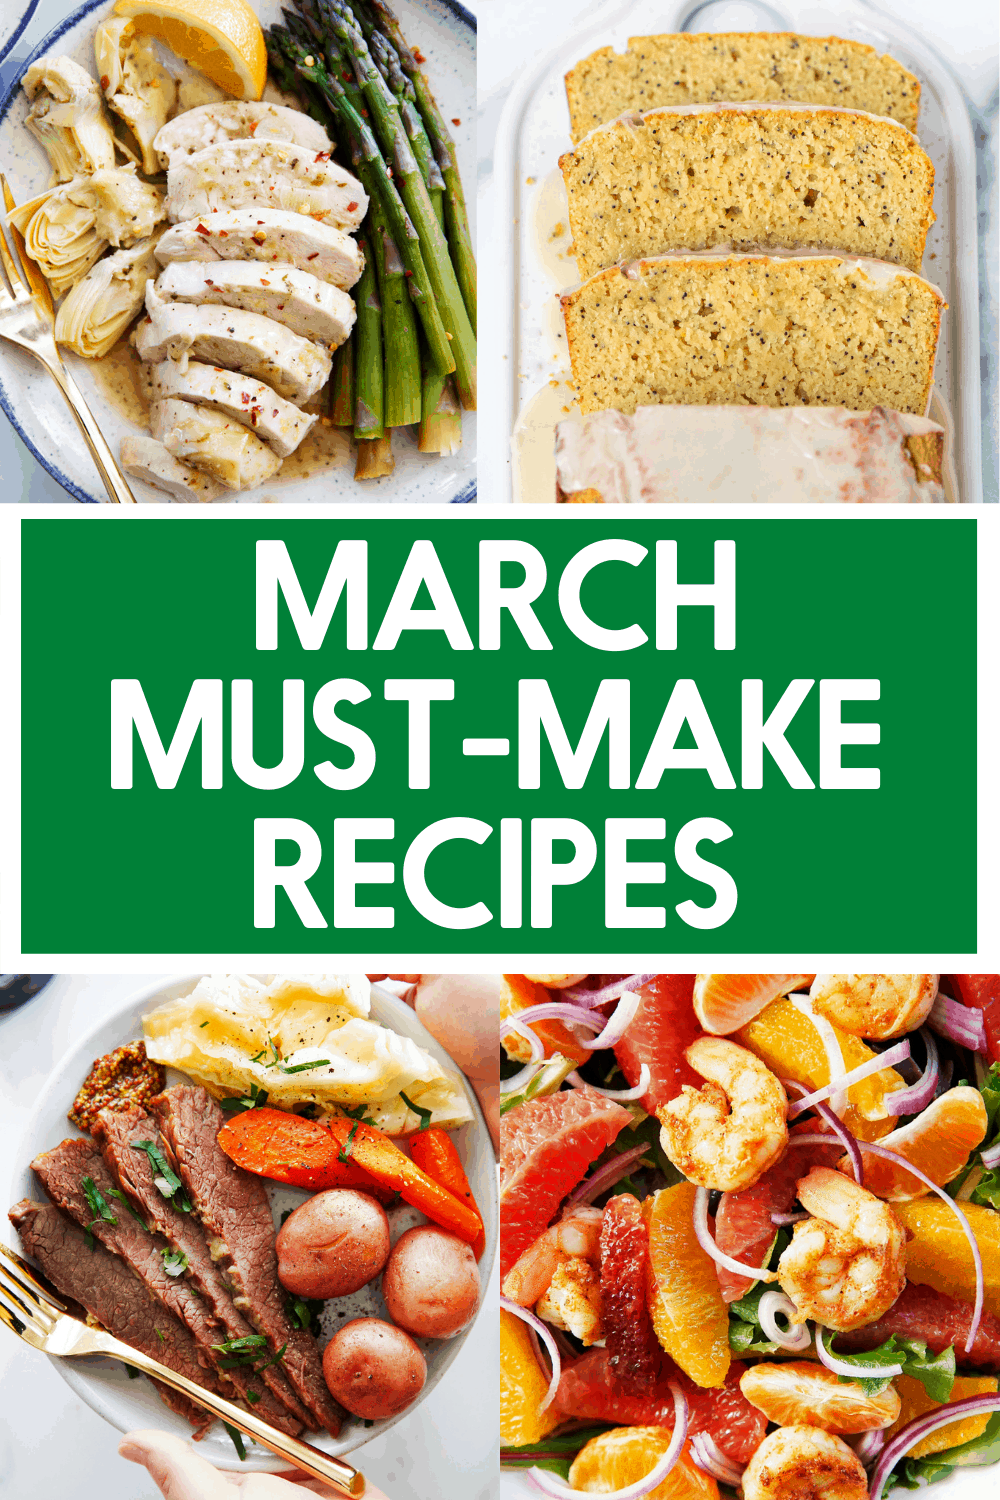 Recipe to make in March.